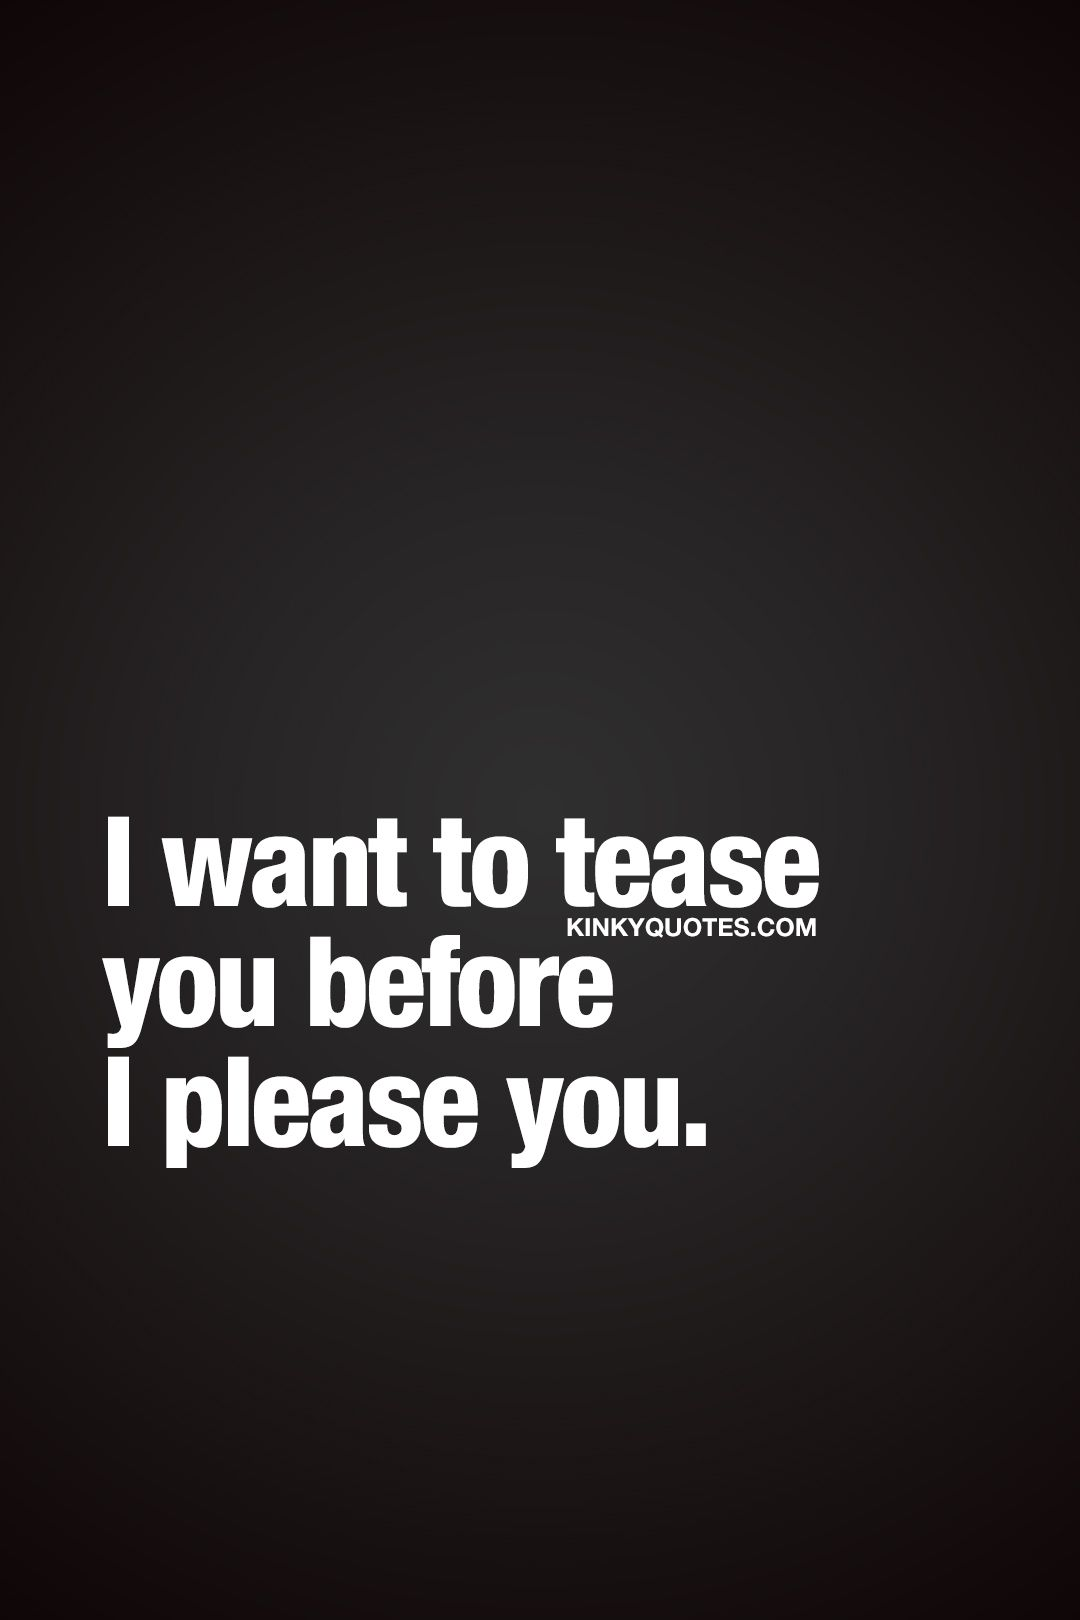 Sexual teasing with words